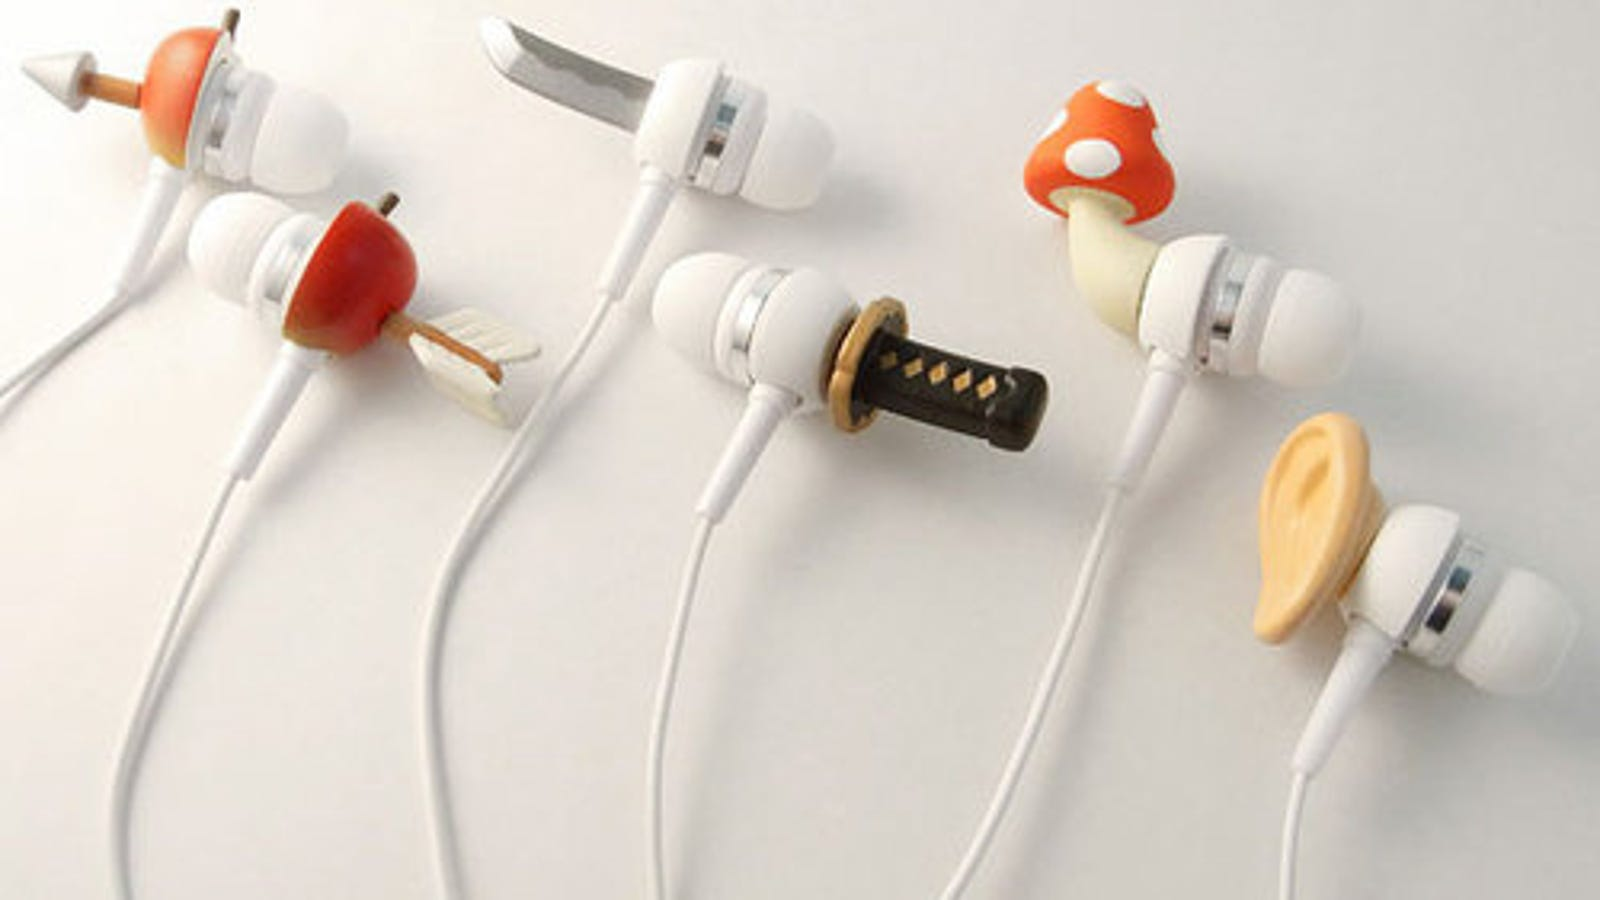 Heavy duty earbuds cords - earbuds zero audio